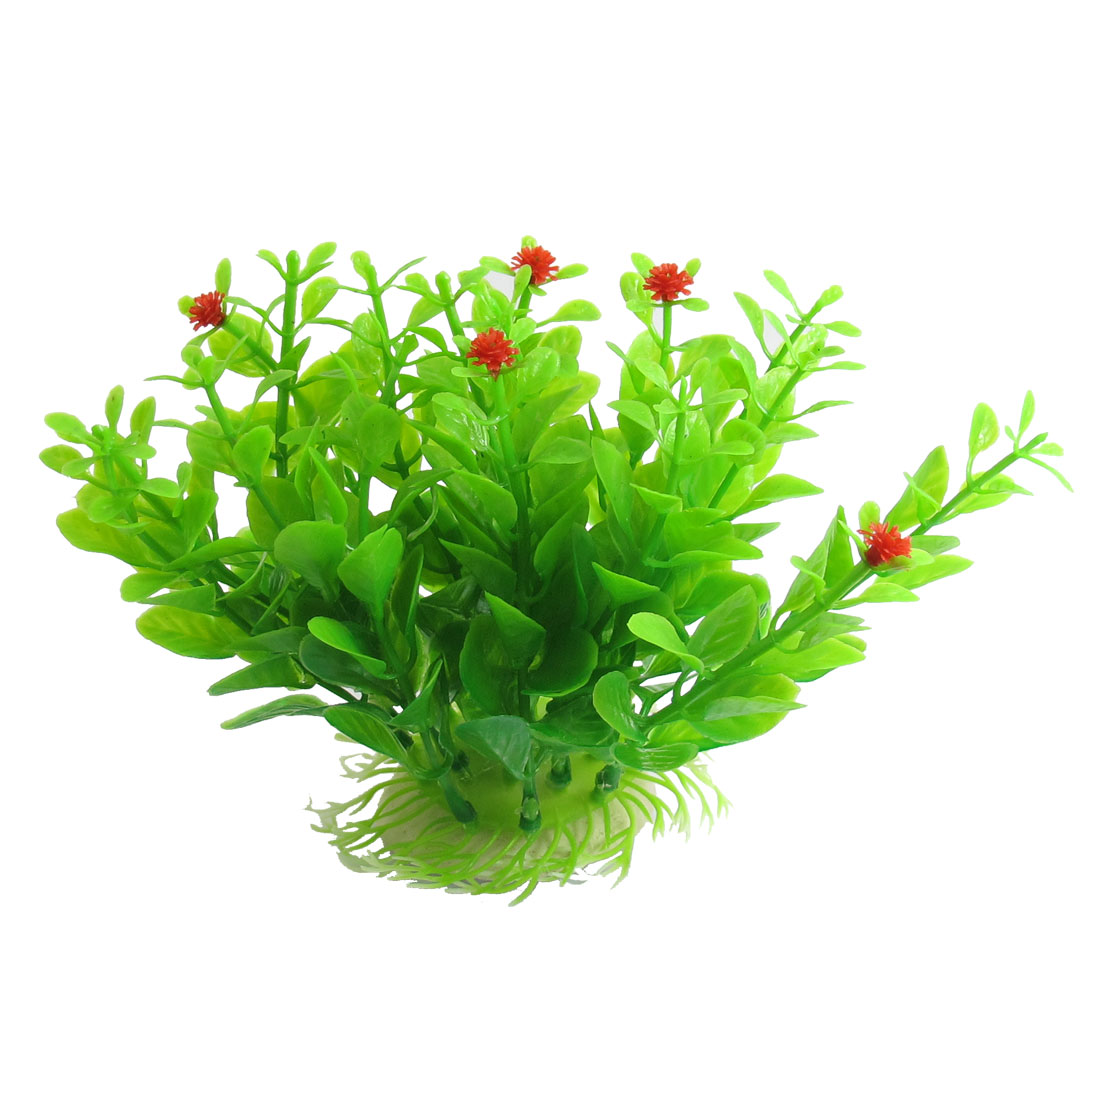 "Aquarium Green Red Manmade Water Grass Plants Decoration 5.1"" Height"